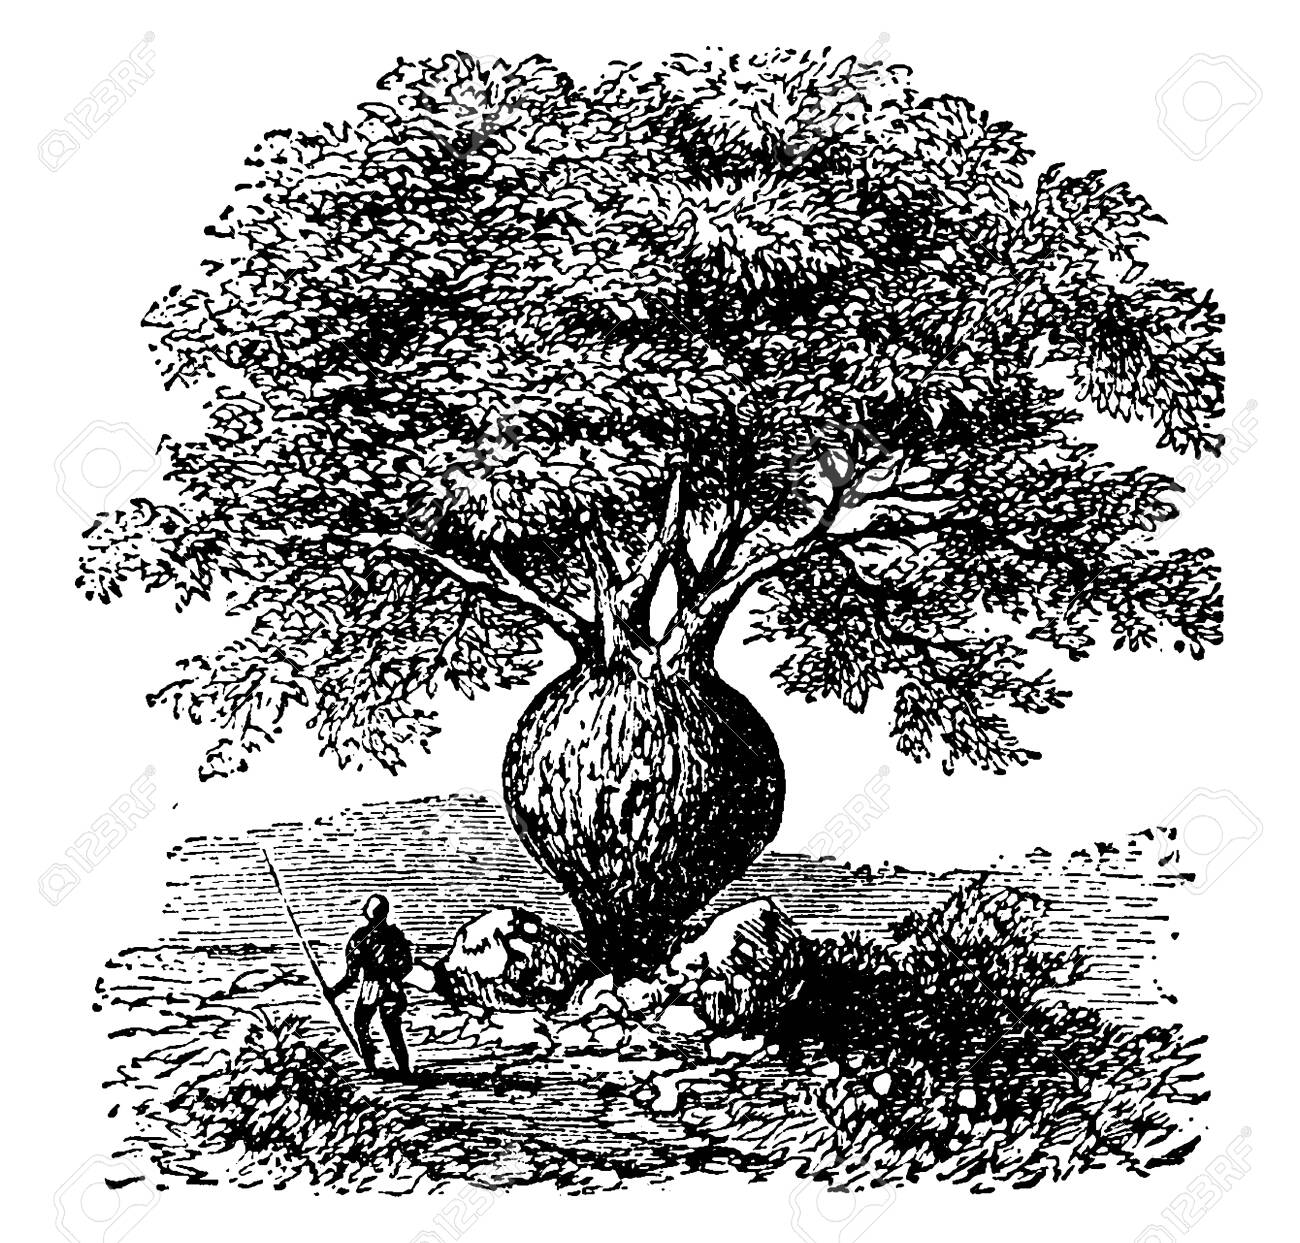 A tree having swollen bottle shaped trunk containing water, vintage line drawing or engraving illustration. - 133062598